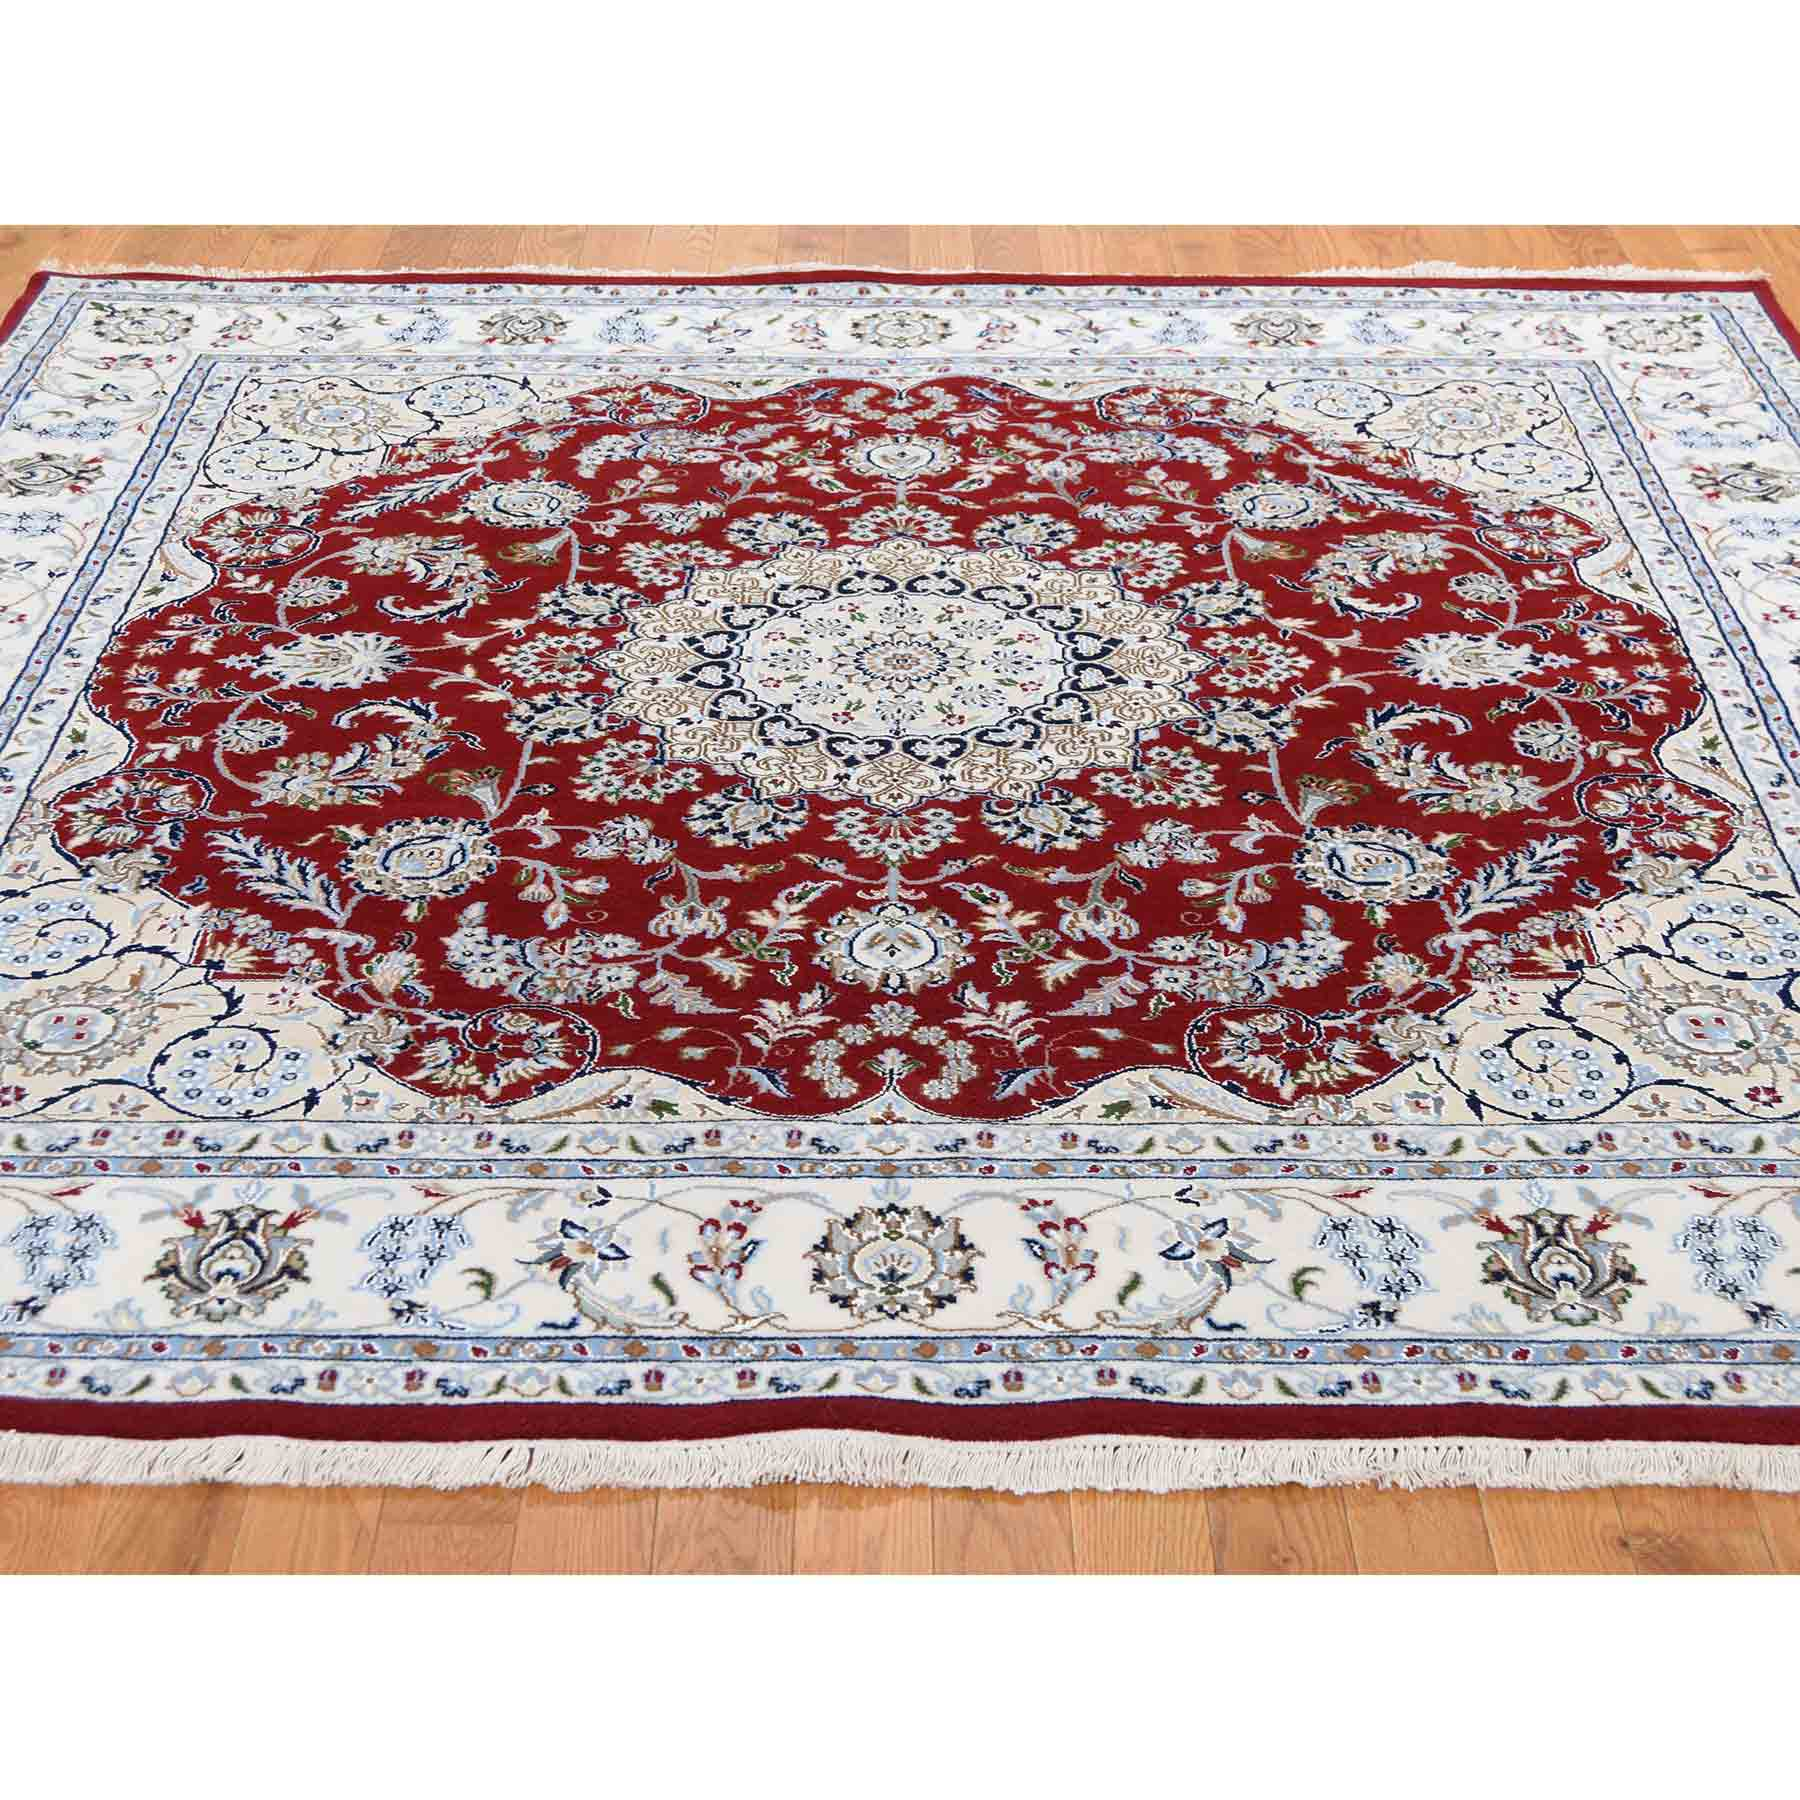 Fine-Oriental-Hand-Knotted-Rug-231820